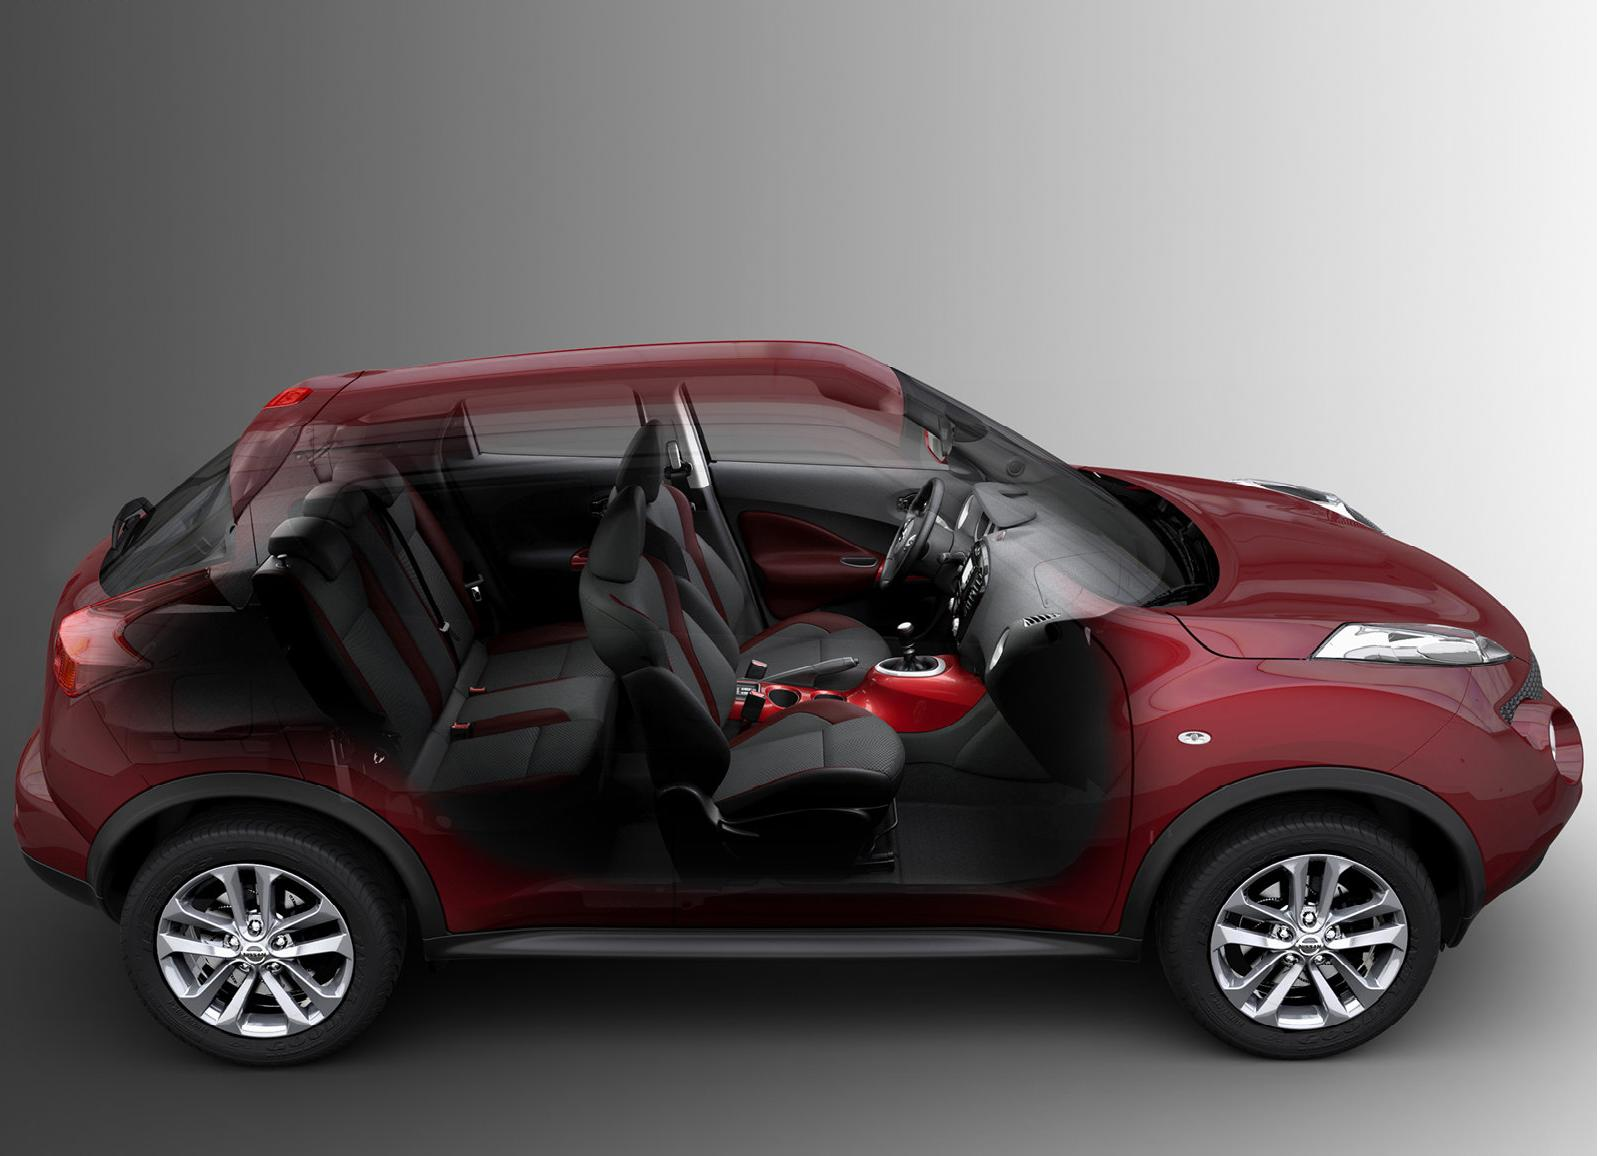 motor mania buzz photo gallery 2010 nissan juke. Black Bedroom Furniture Sets. Home Design Ideas